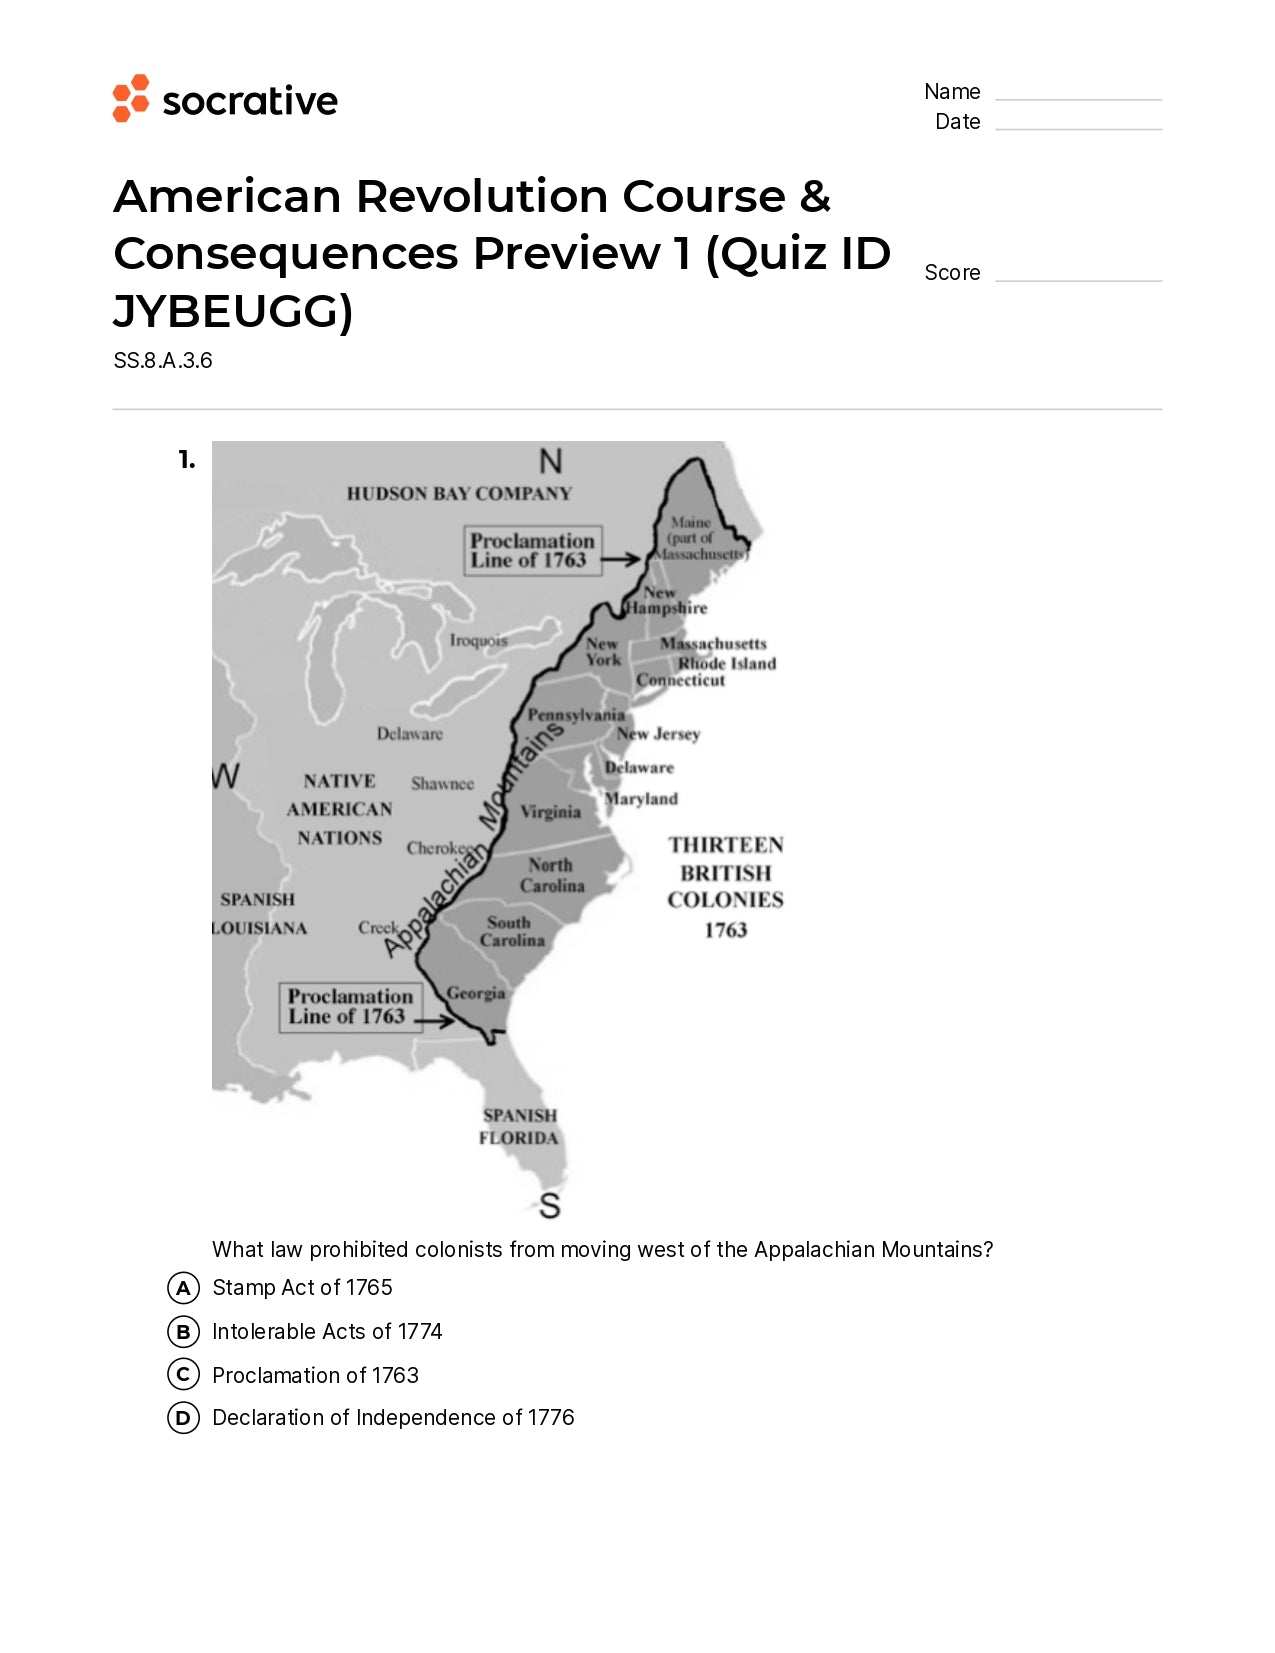 American Revolution Course & Consequences Preview 1